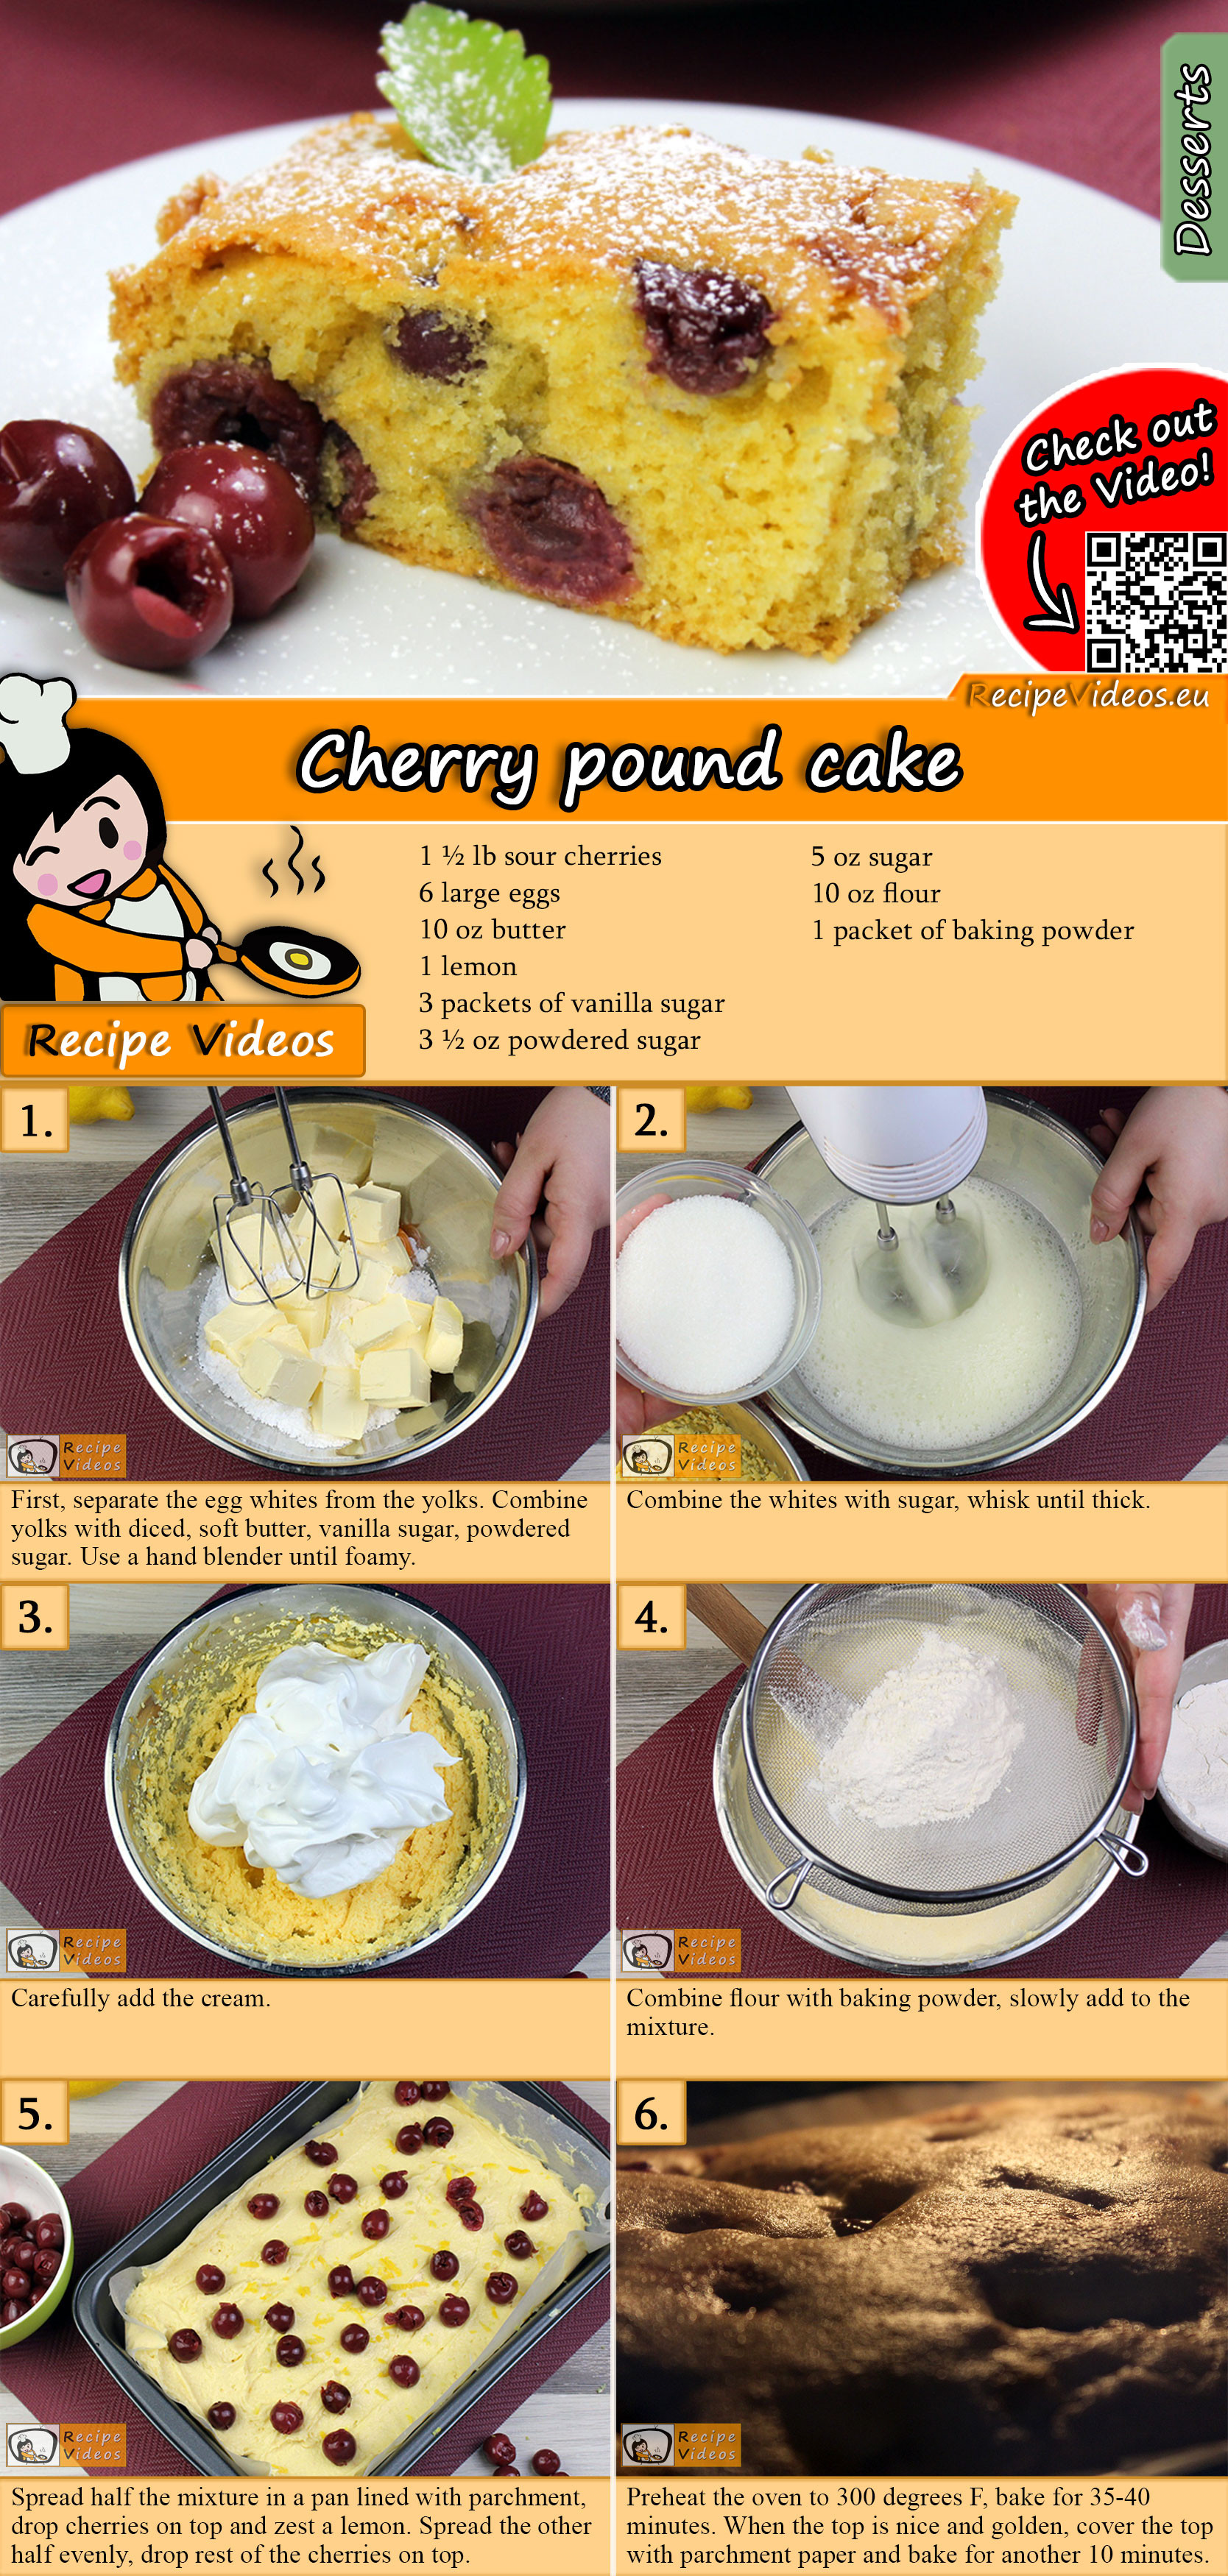 Cherry pound cake recipe with video